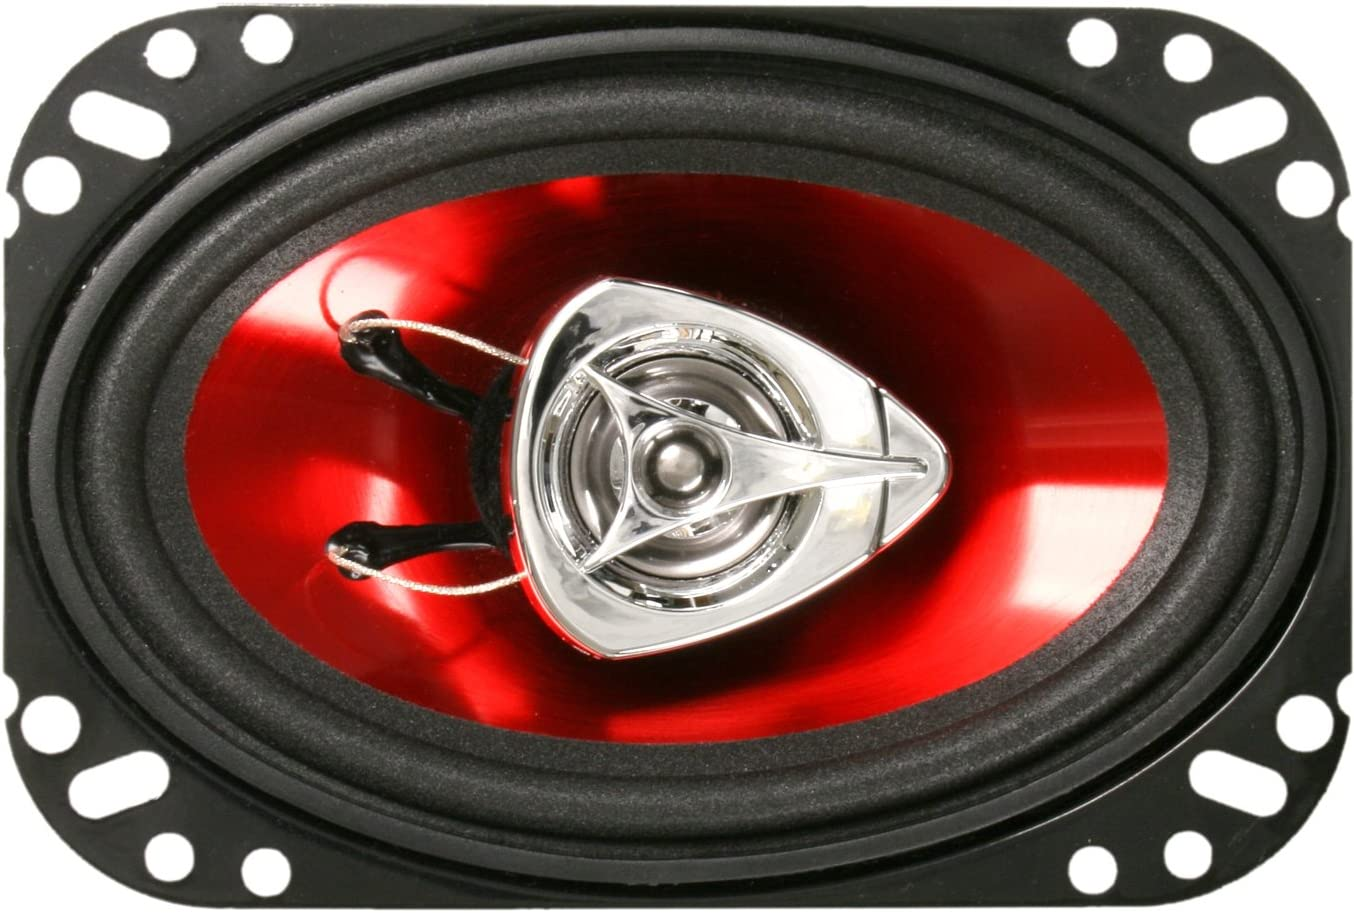 BOSS Audio Systems CH4620 Car Speakers - 200 Watts Of Power Per Pair And 100 Watts Each, 4 x 6 Inch , Full Range, 2 Way, Sold in Pairs, Easy Mounting